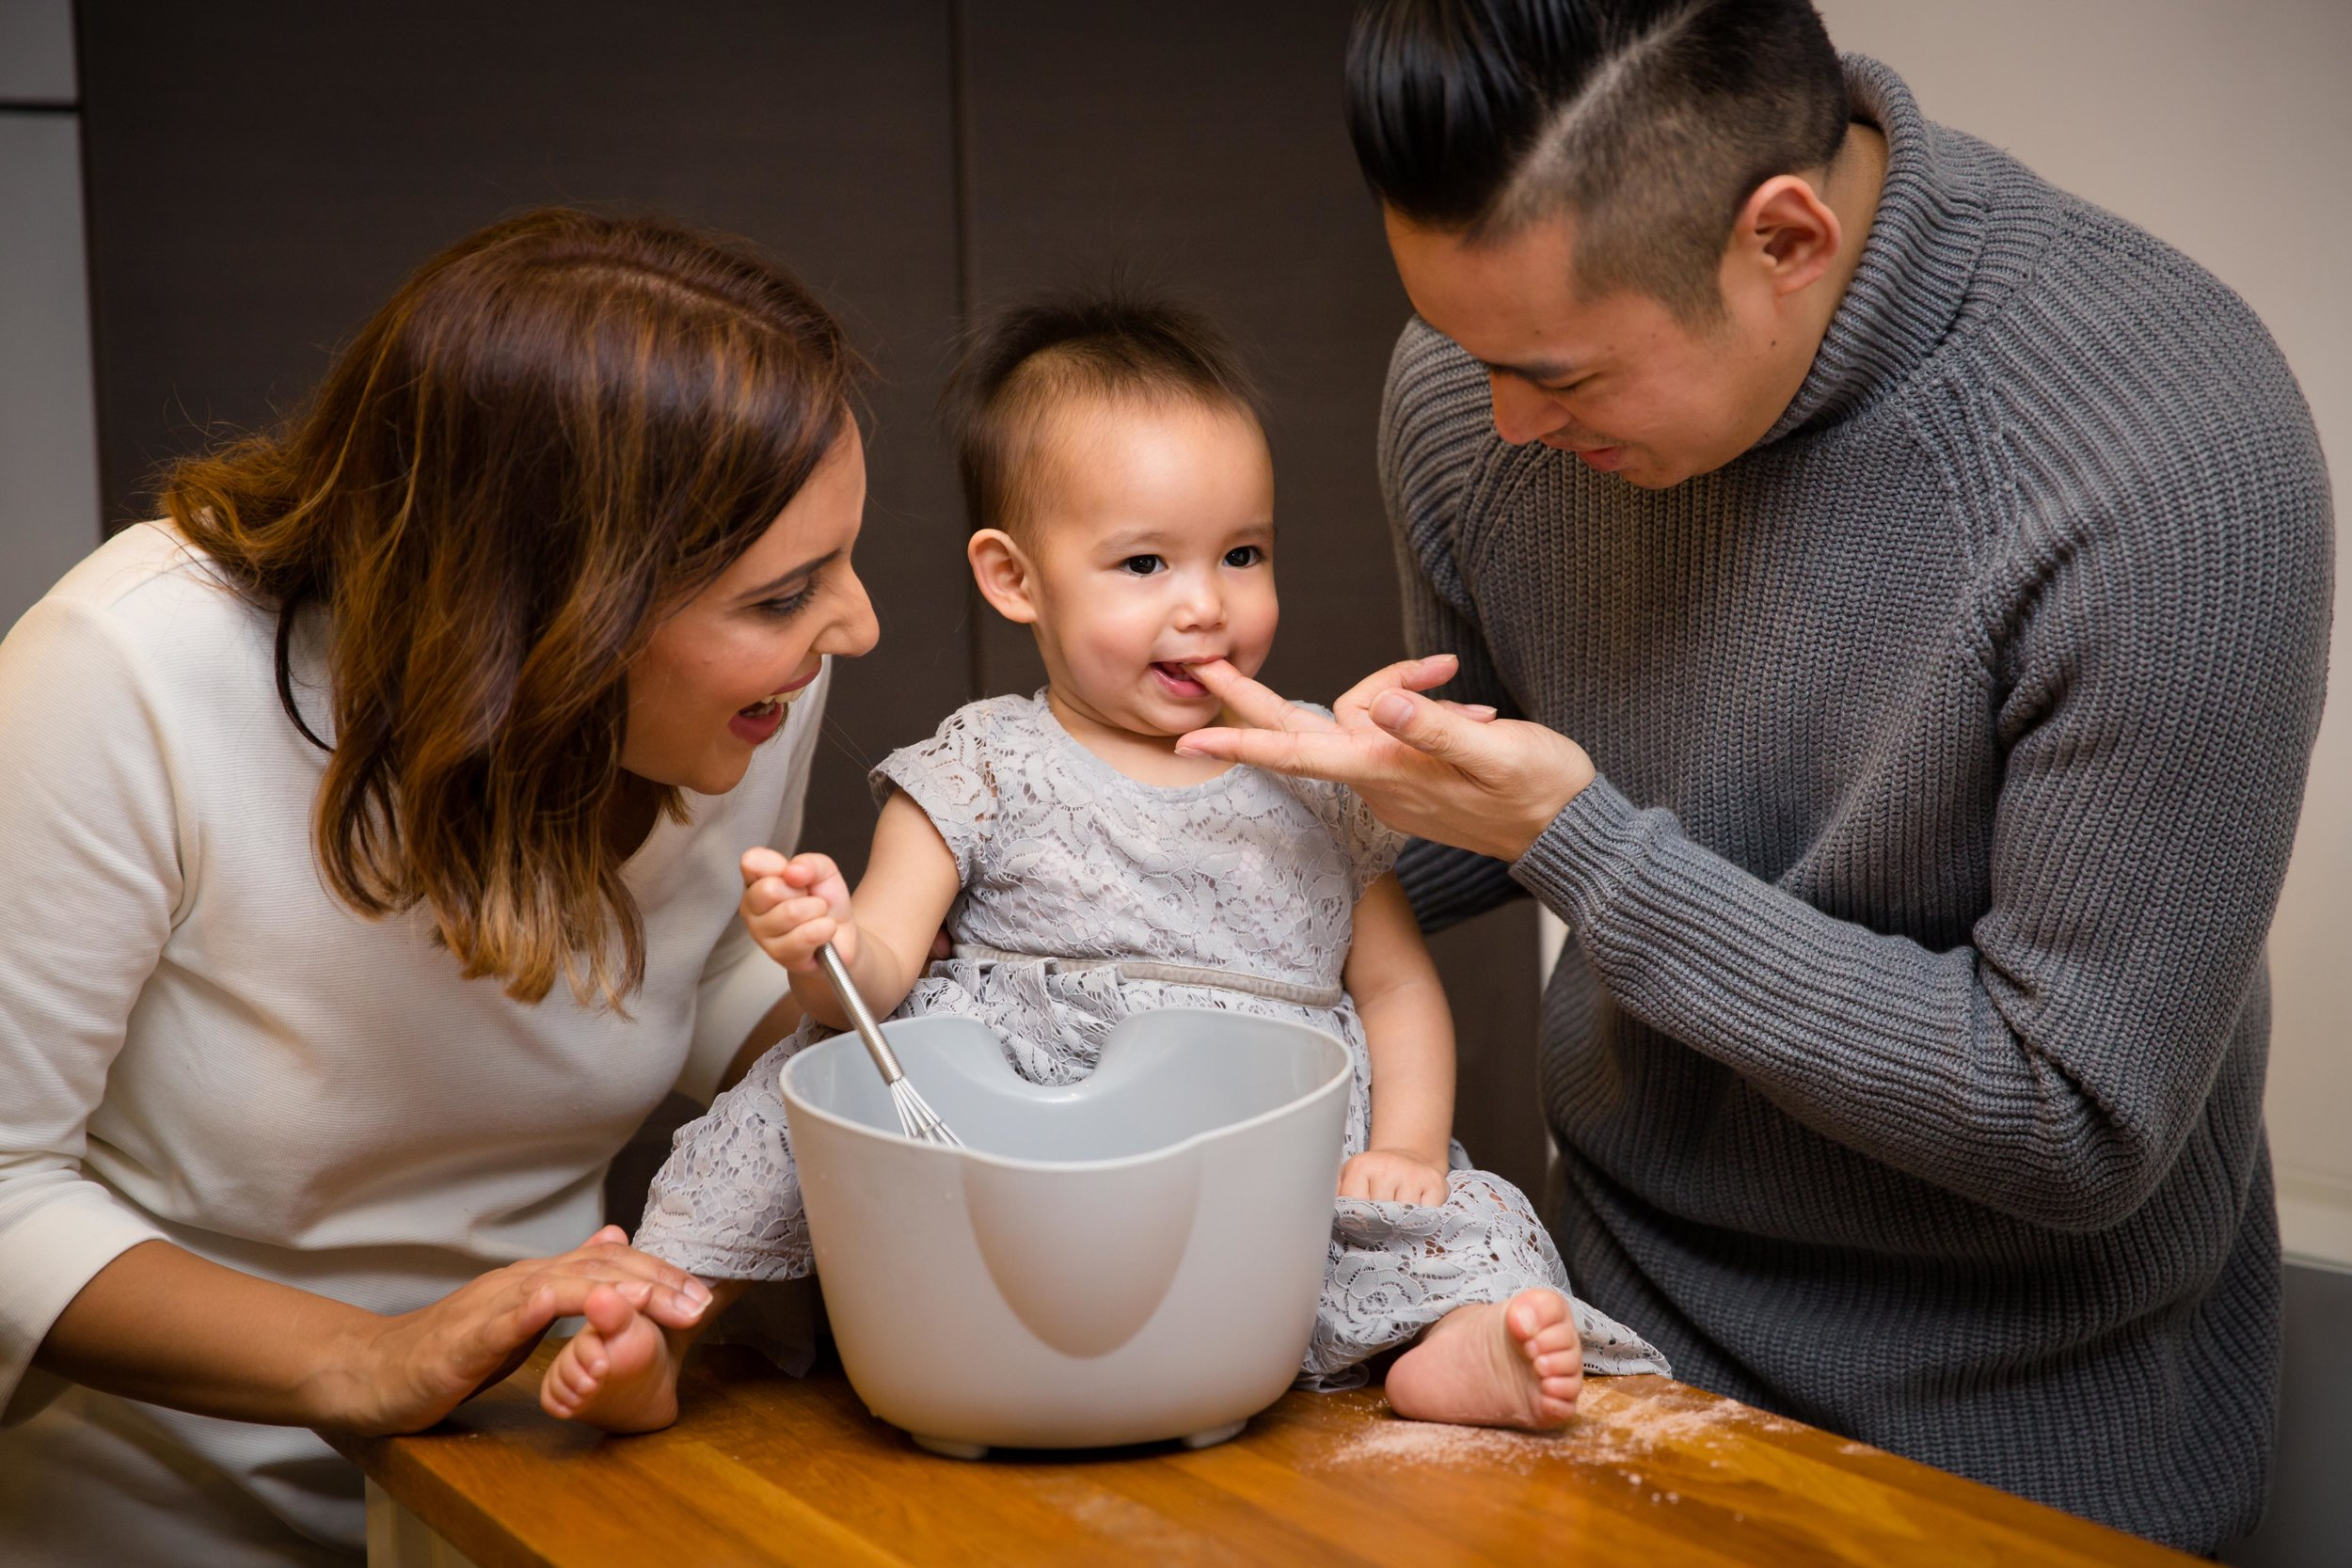 baking-with-baby-parents-taste-cake-london-lifestyle-shoot.jpg